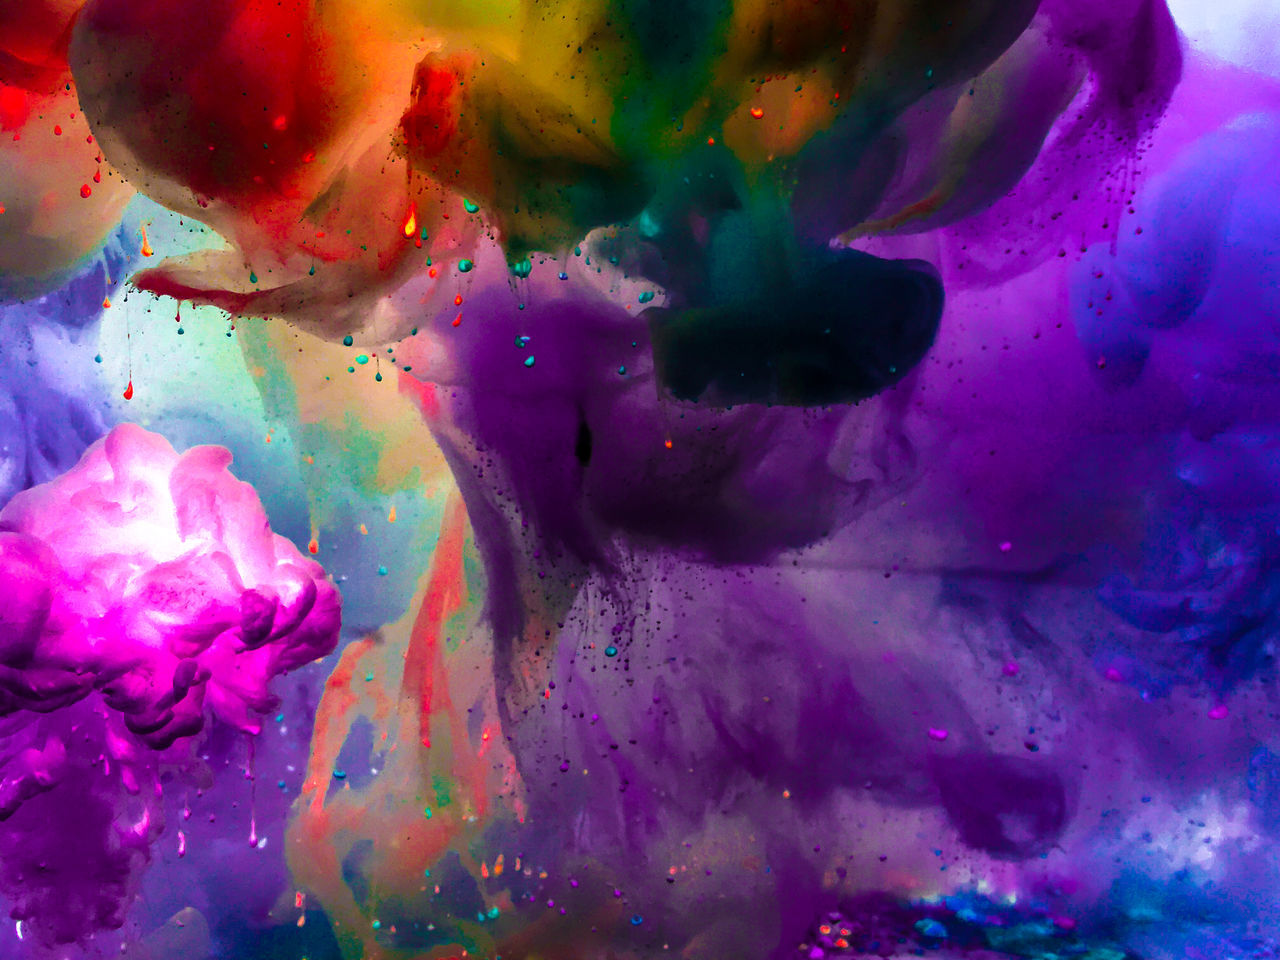 Abstract Backgrounds Close-up Day Full Frame Holi Multi Colored No People Pattern Powder Paint Studio Shot